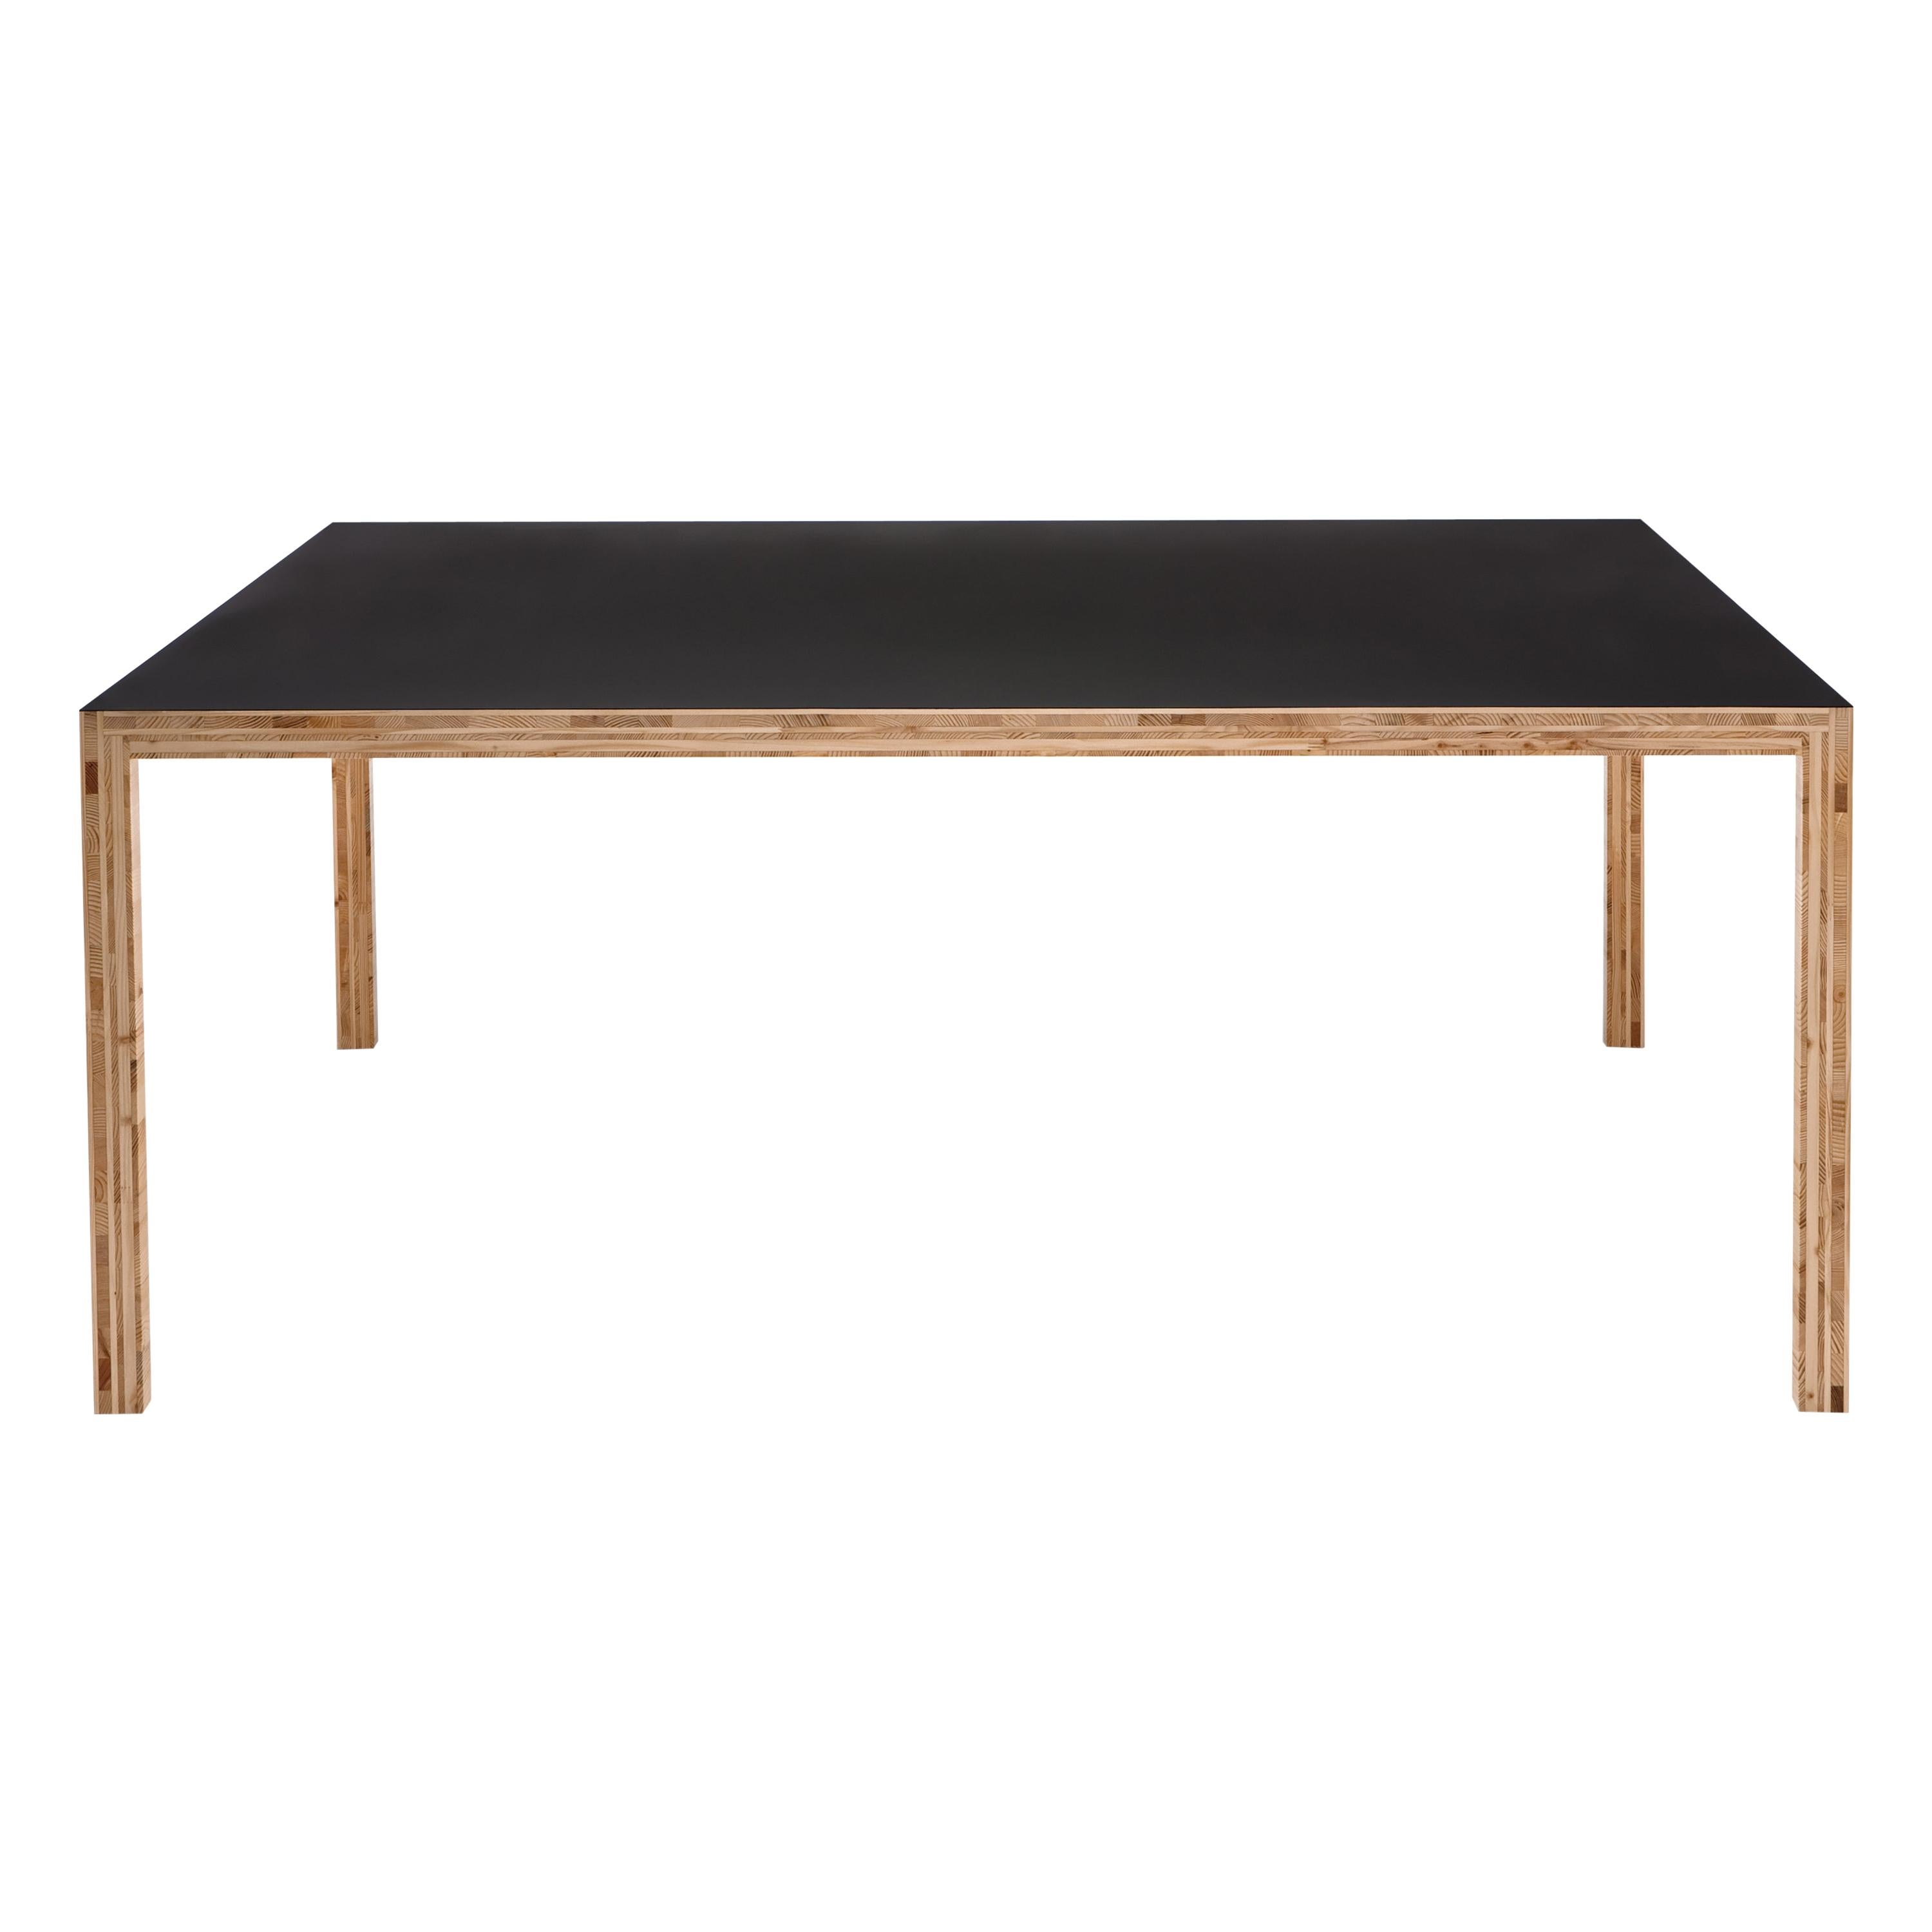 Established & Sons Table in Plywood by Caruso St John